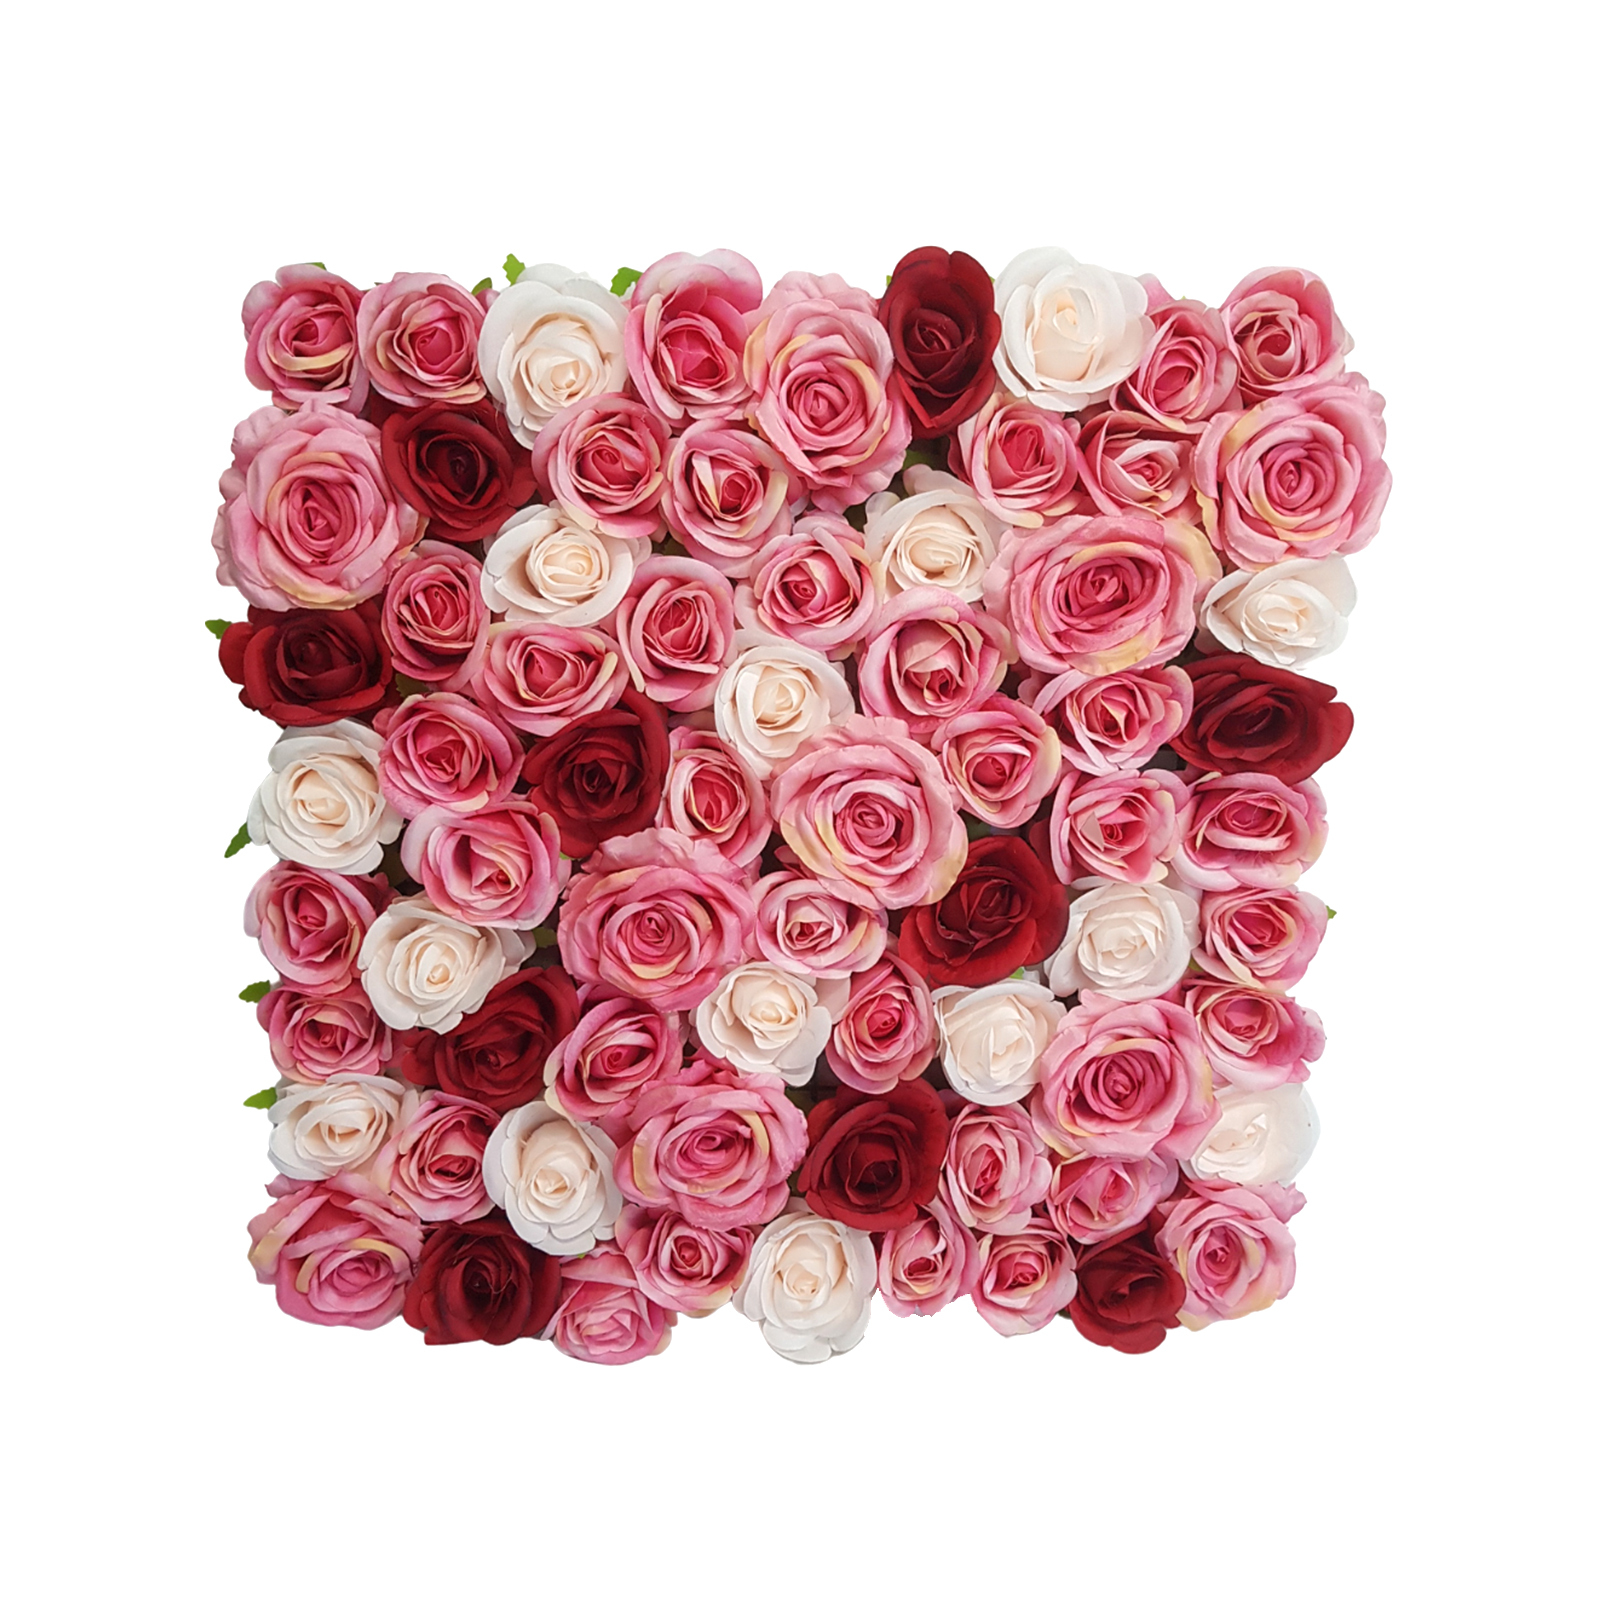 Unreal 50 x 50cm Multi Flower Wall Artificial Hedge Tile